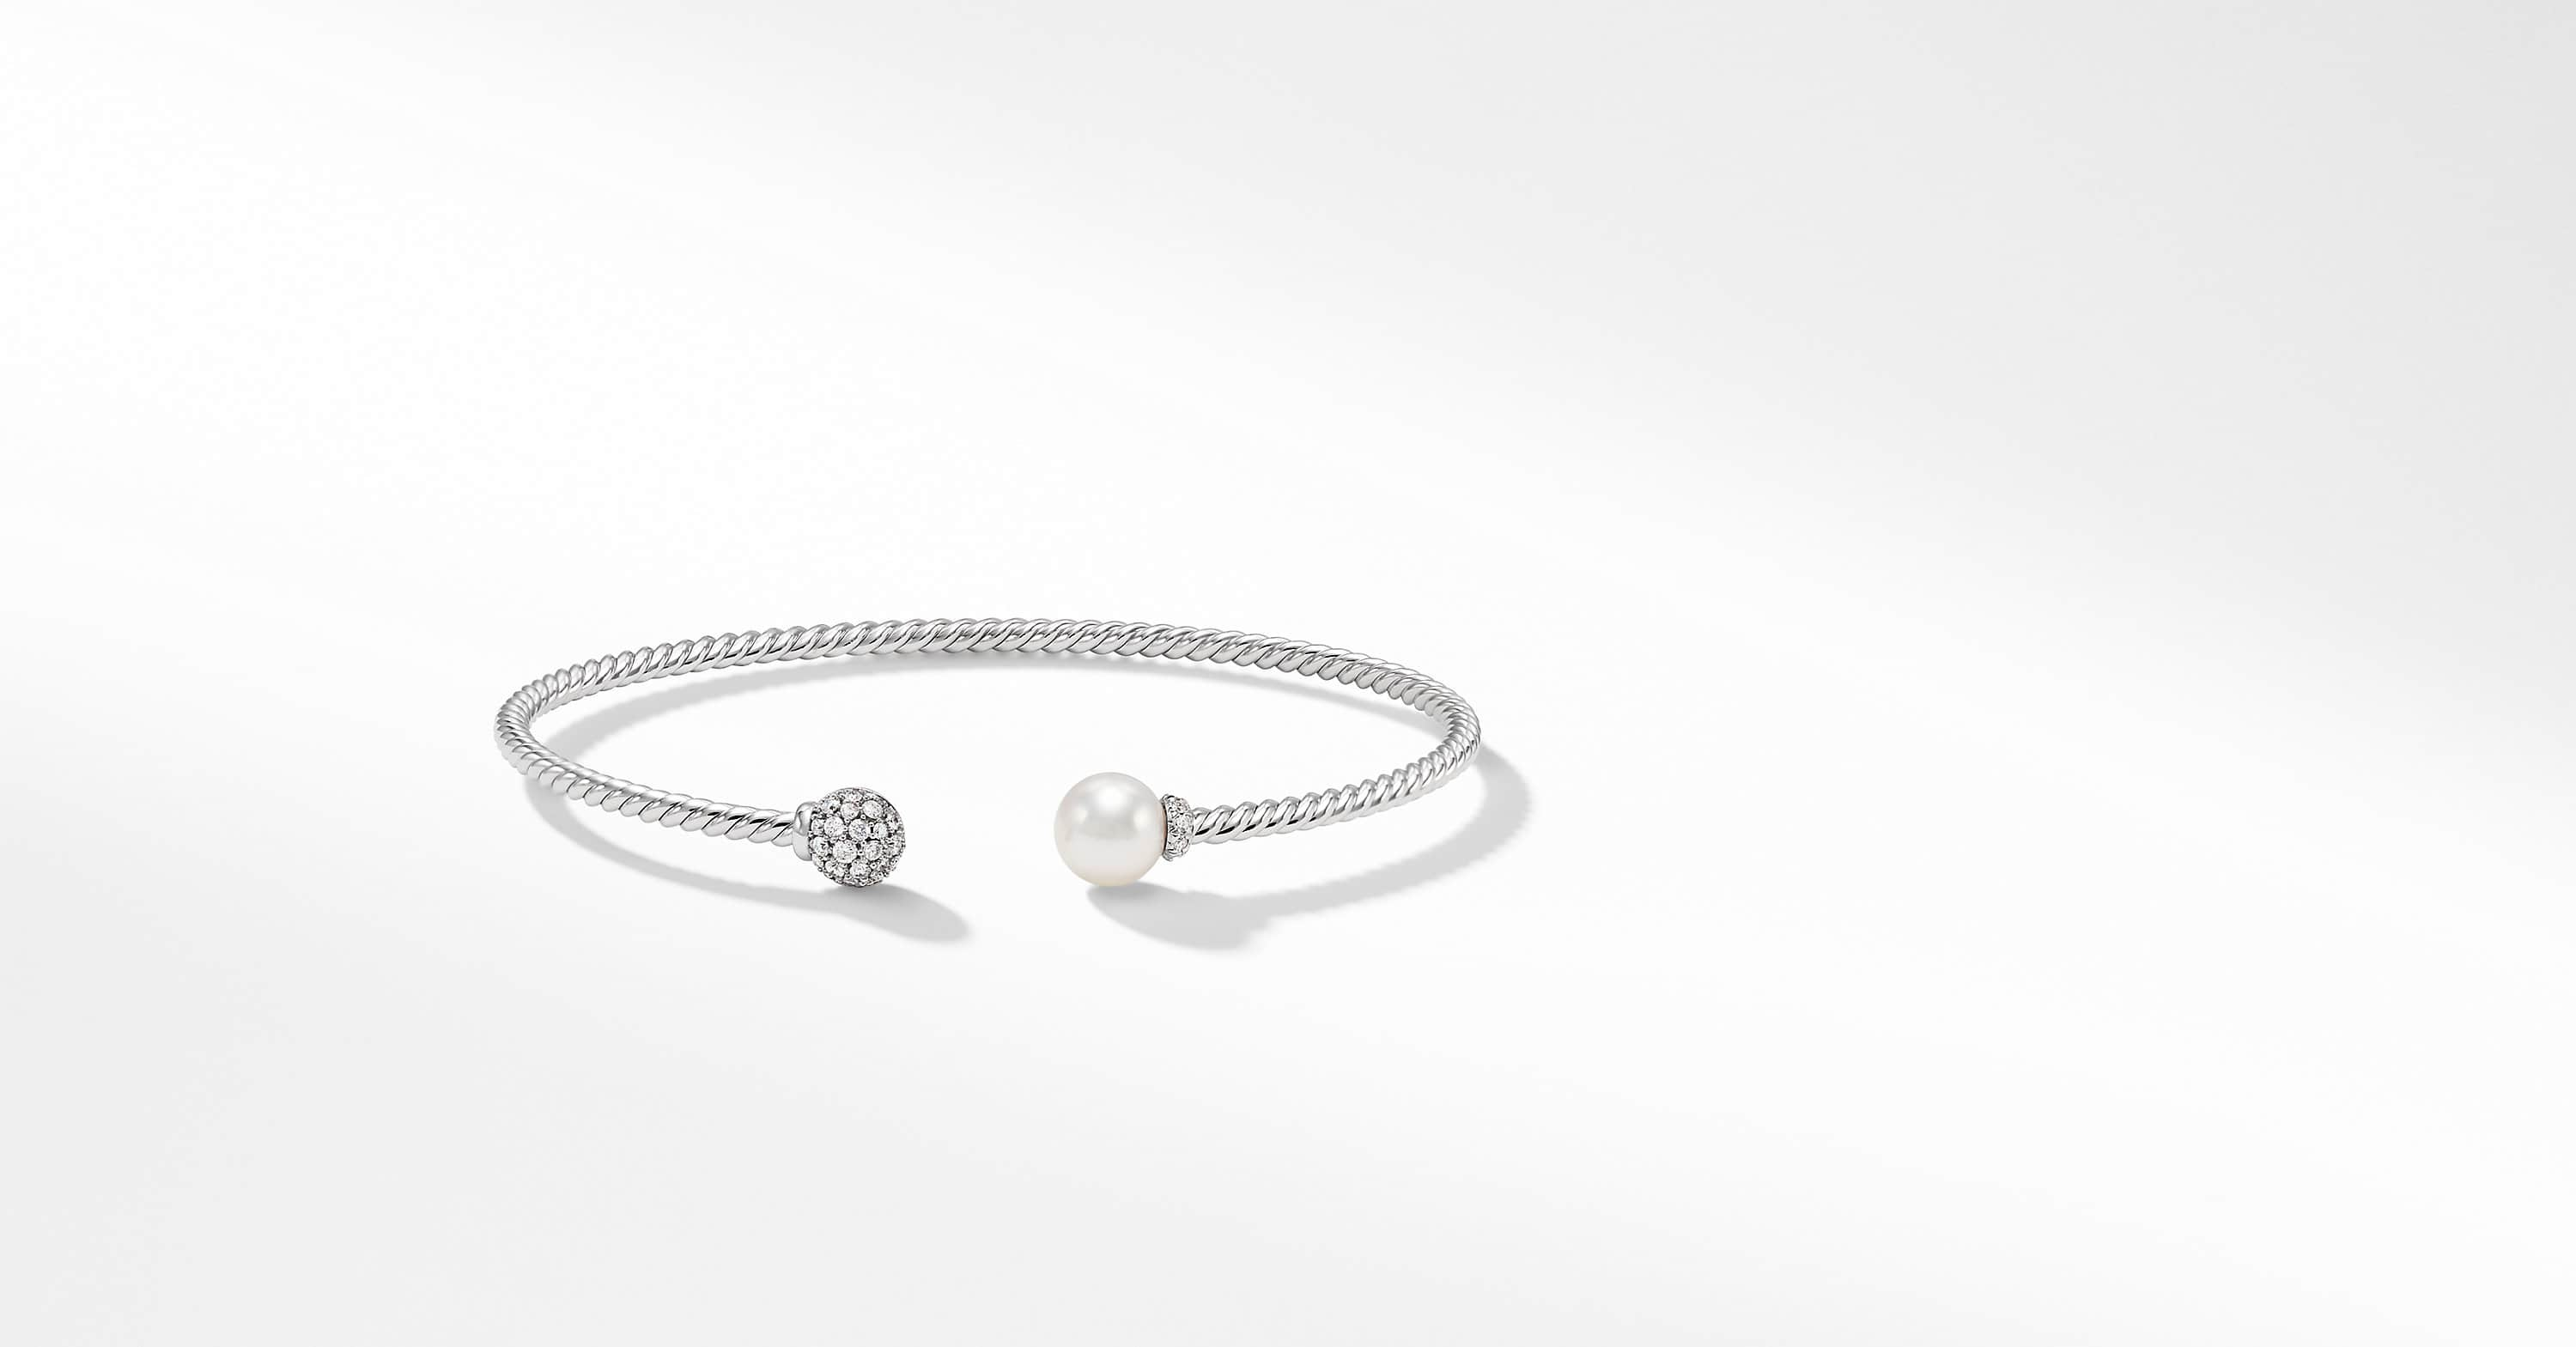 Petite Solari Bead and Pearl Bracelet with Diamonds in 18K White Gold